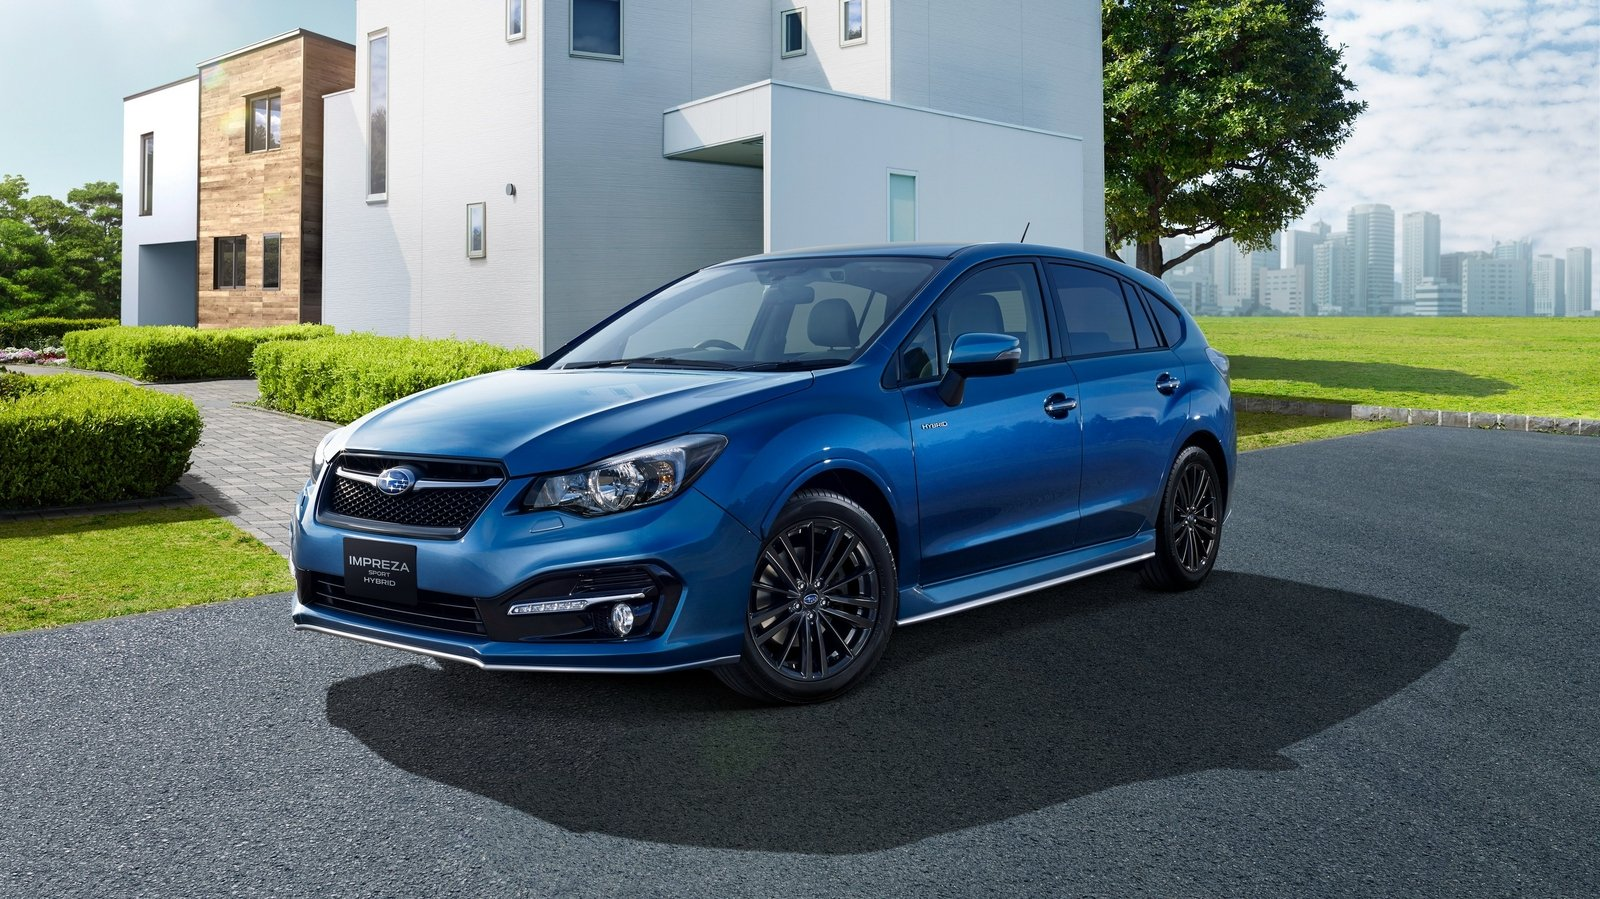 2016 subaru impreza sport hybrid picture 635520 car review top speed. Black Bedroom Furniture Sets. Home Design Ideas